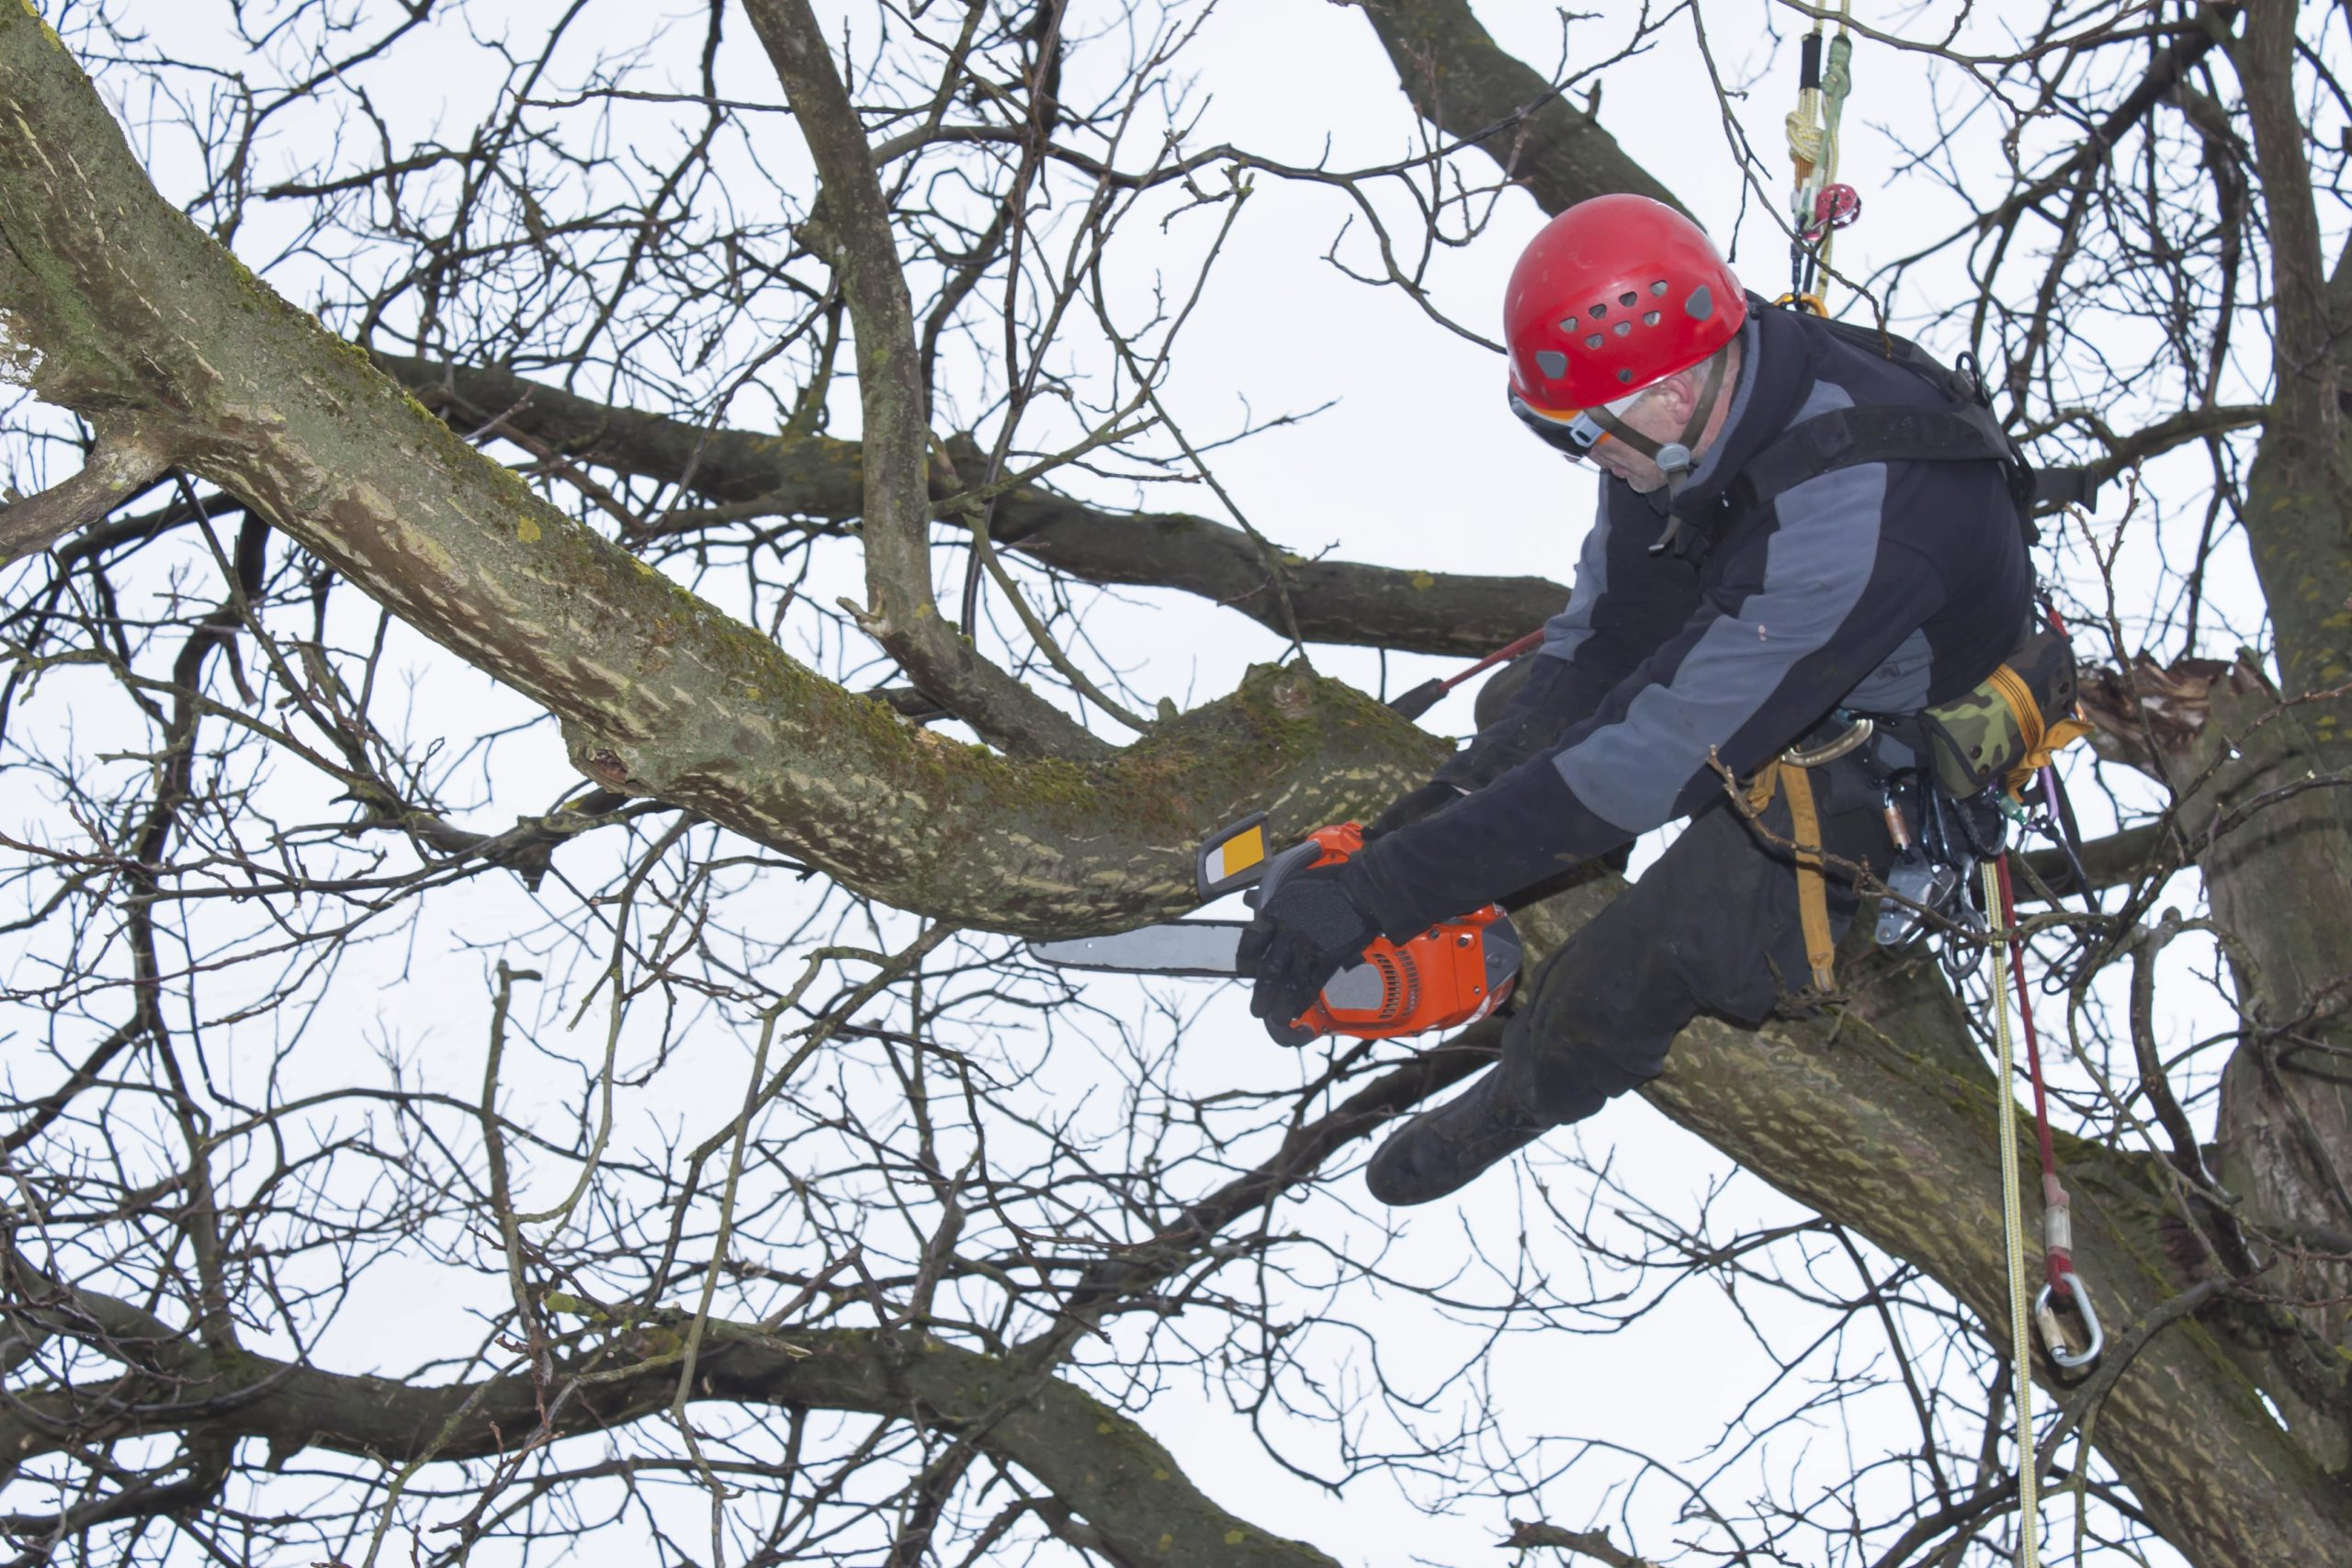 Tree Trimming and Pruning-Palm Beach County Tree Trimming and Tree Removal Services-We Offer Tree Trimming Services, Tree Removal, Tree Pruning, Tree Cutting, Residential and Commercial Tree Trimming Services, Storm Damage, Emergency Tree Removal, Land Clearing, Tree Companies, Tree Care Service, Stump Grinding, and we're the Best Tree Trimming Company Near You Guaranteed!